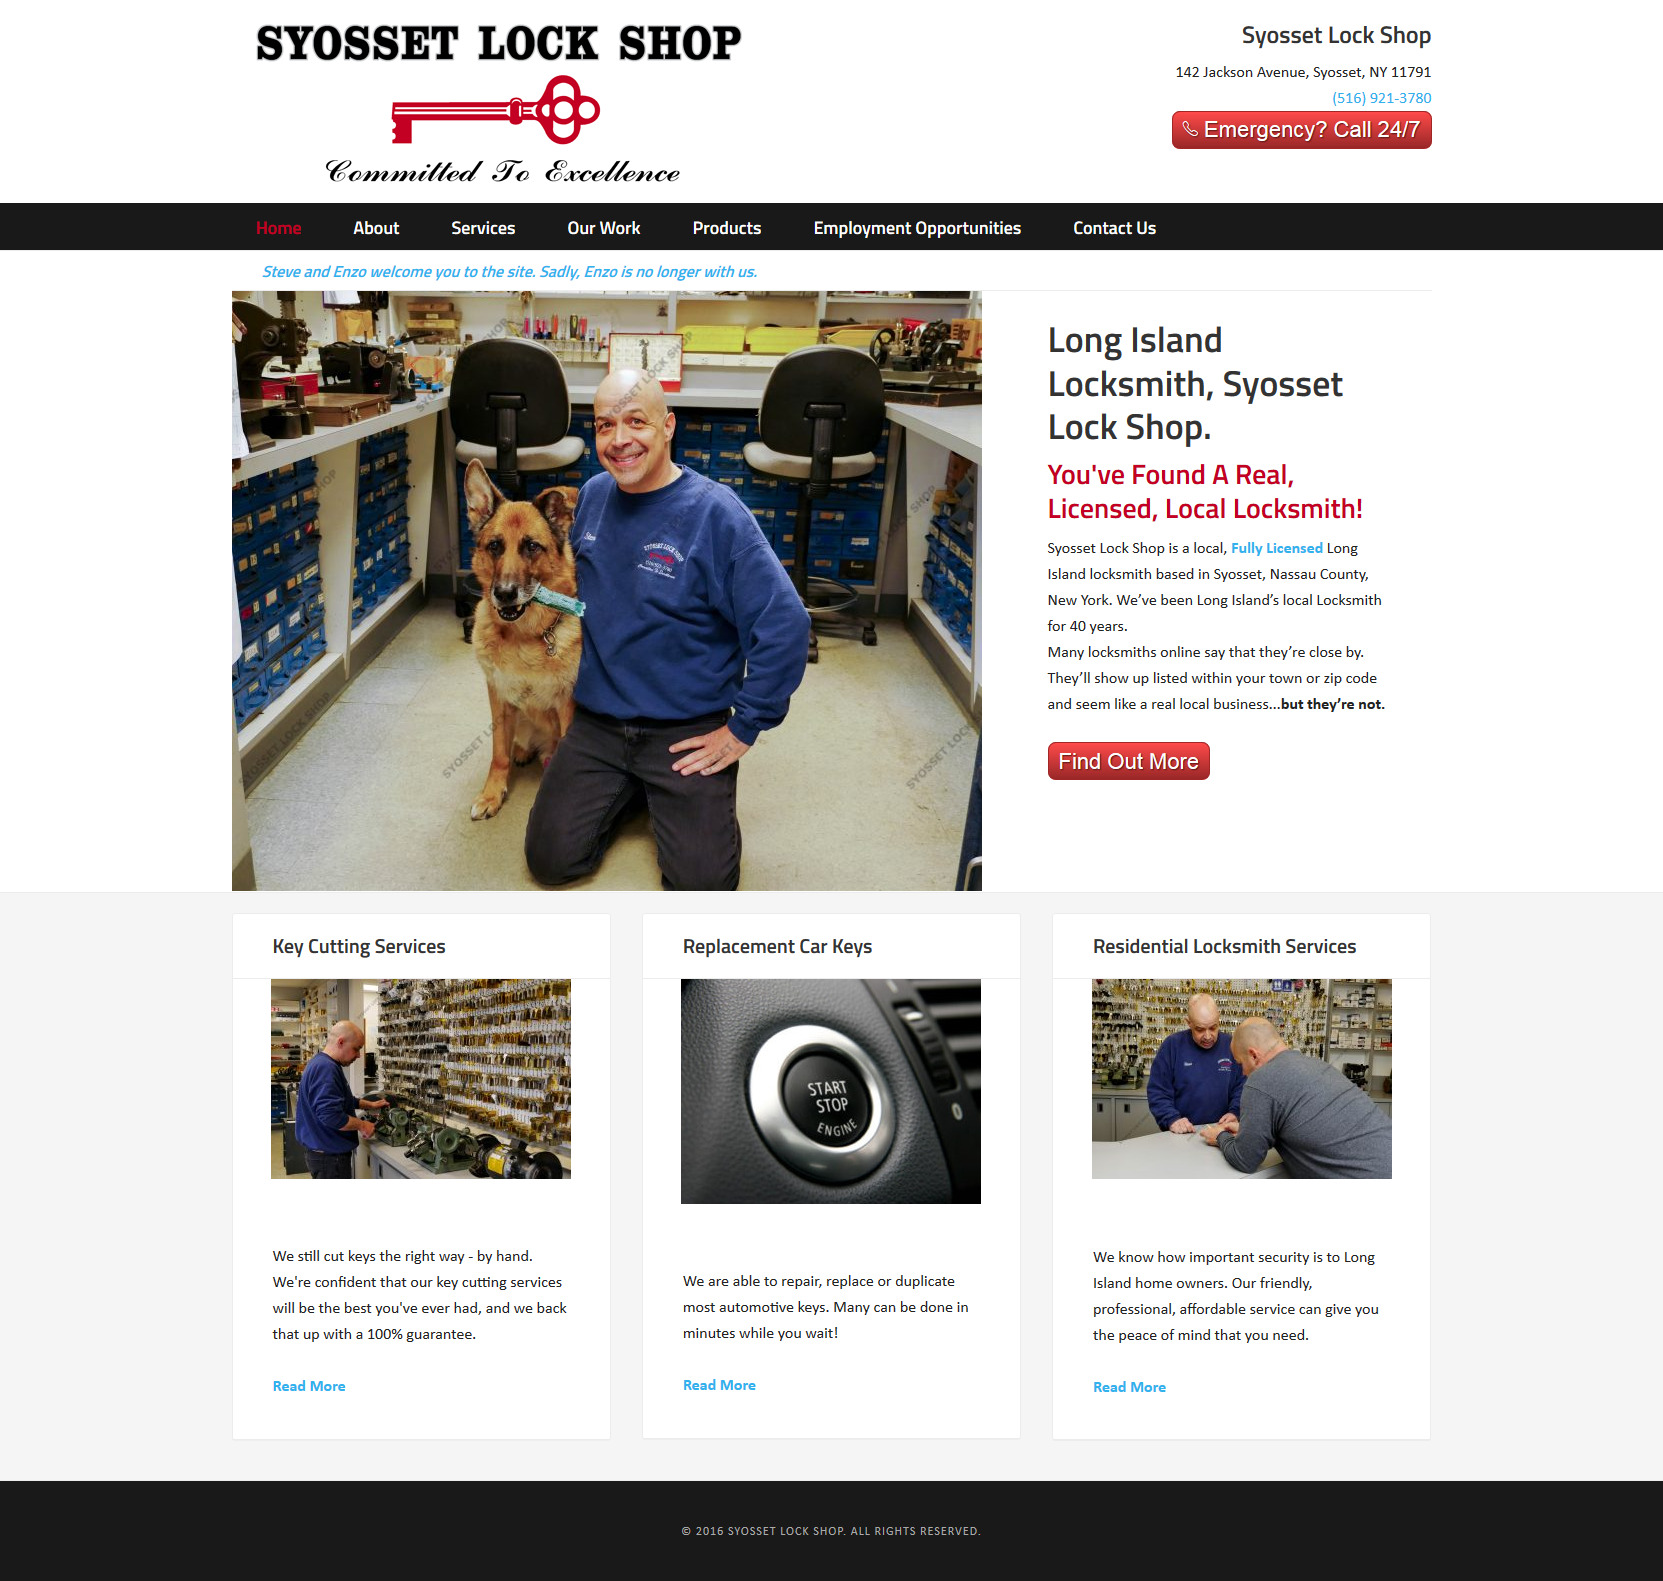 Syosset Lock Shop website built by Suffolk County Webmasters